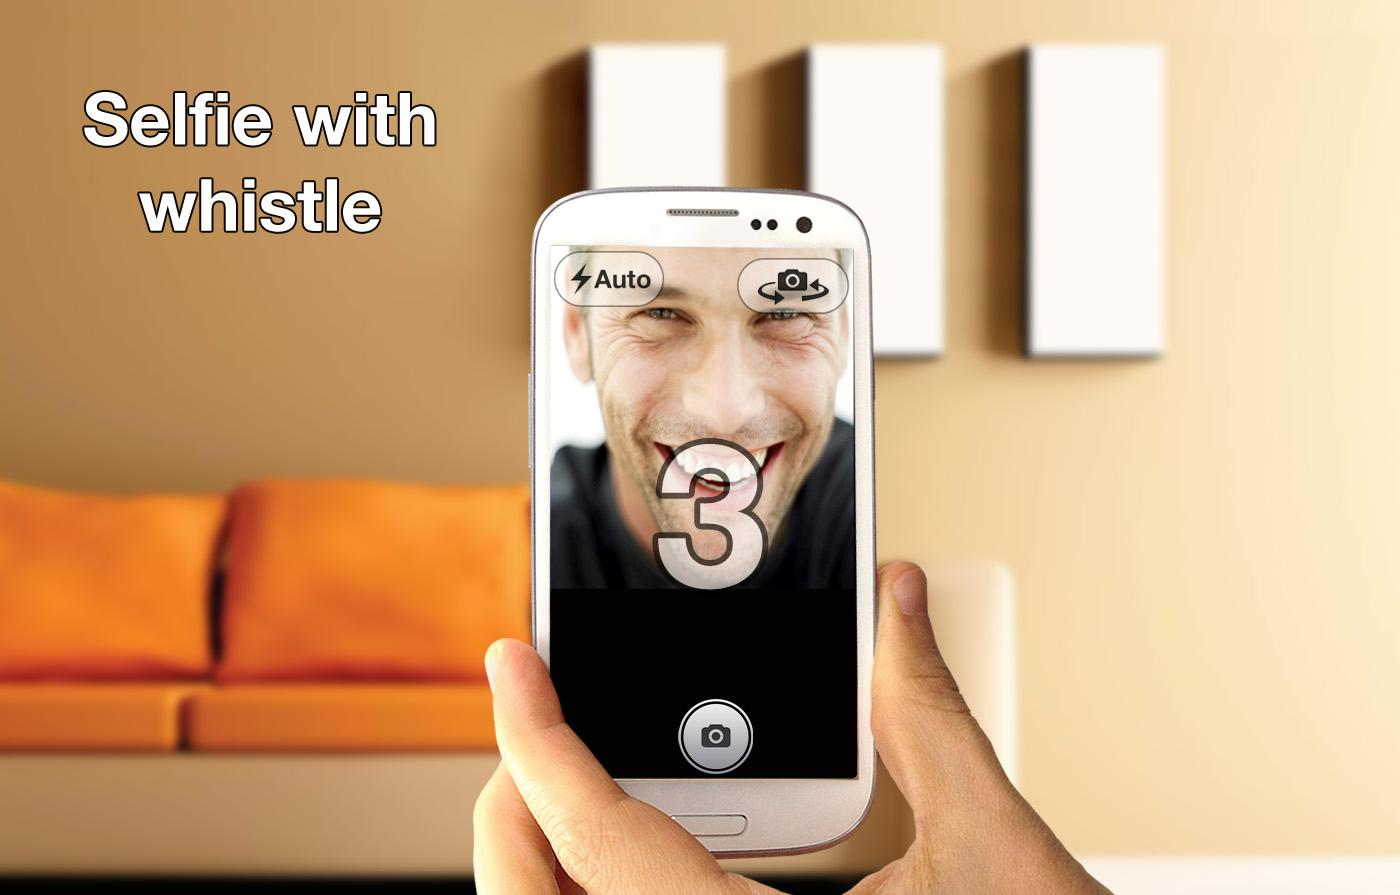 Whistle Camera - Selfie & More Screenshot 0